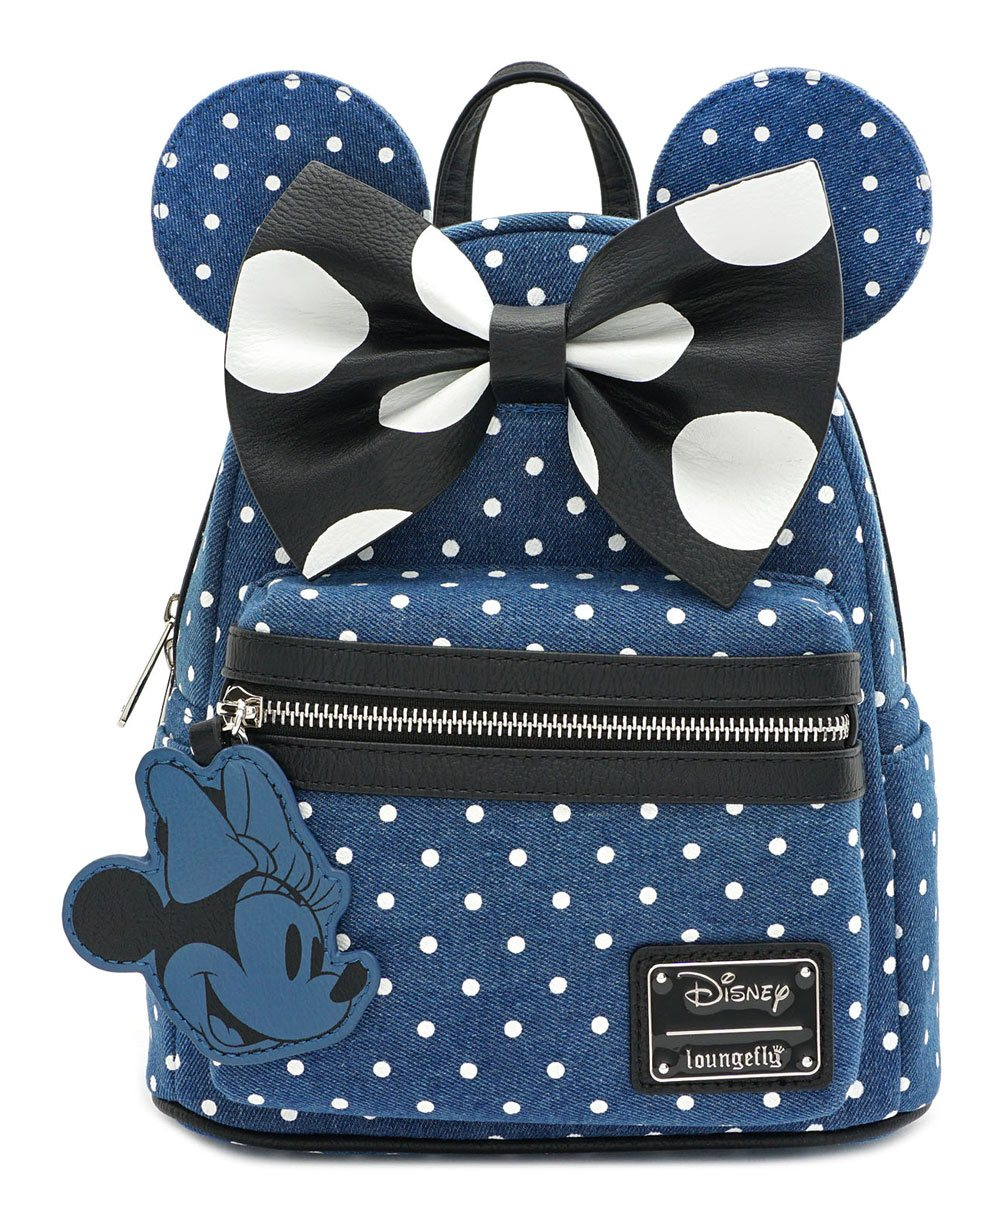 Disney - Loungefly - Sac à dos Minnie Mouse dots